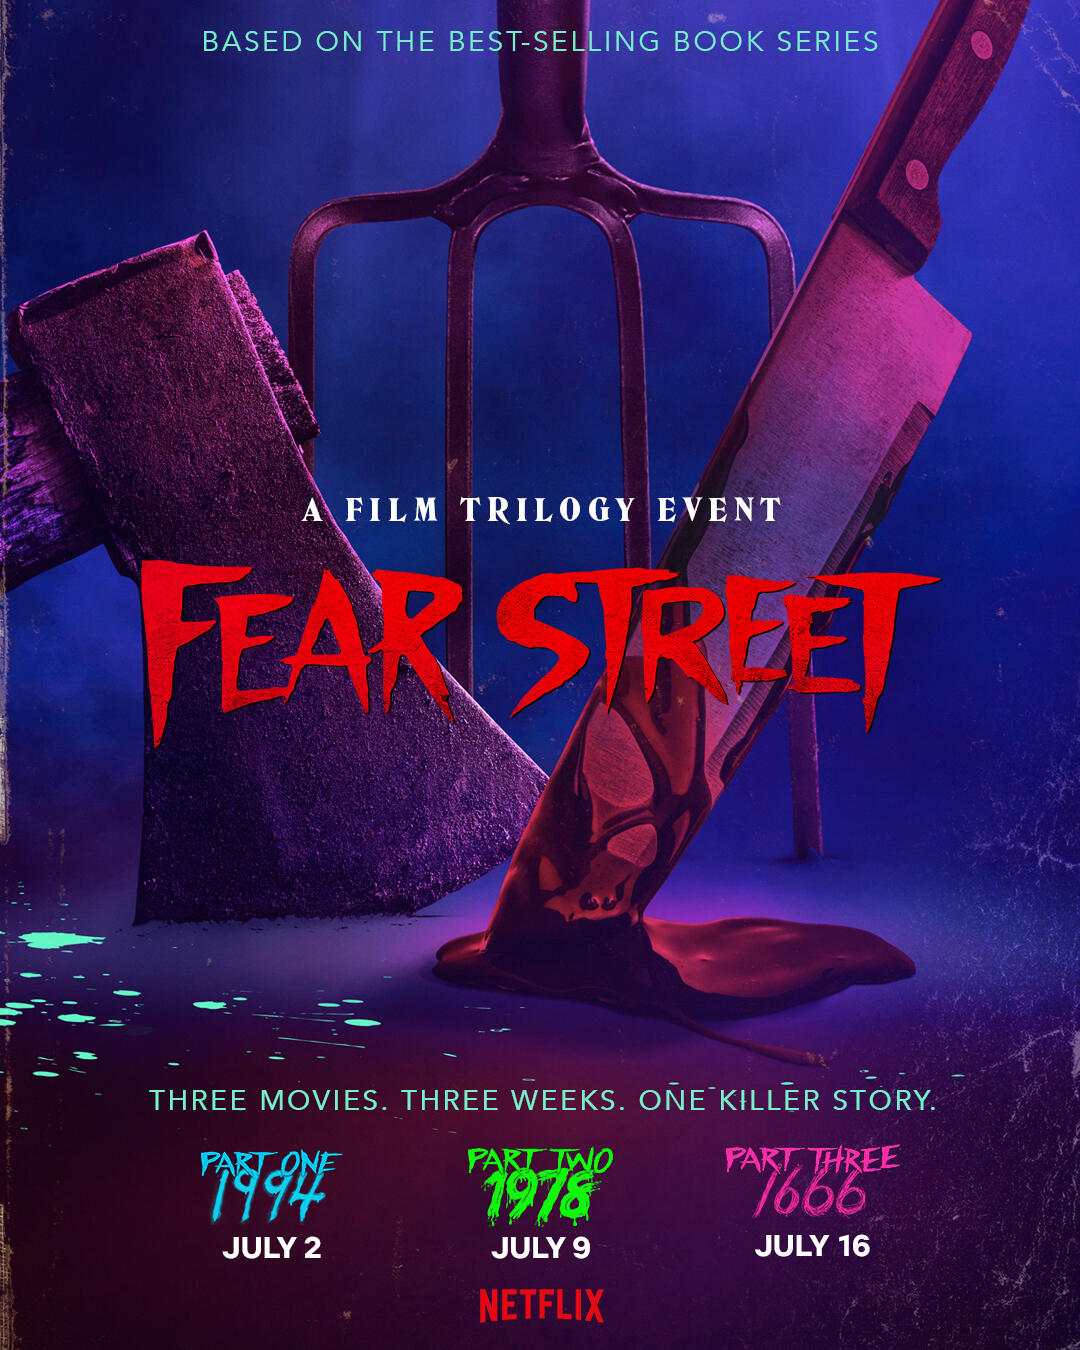 Fear Street horror movie trilogy is coming to Netflix in July